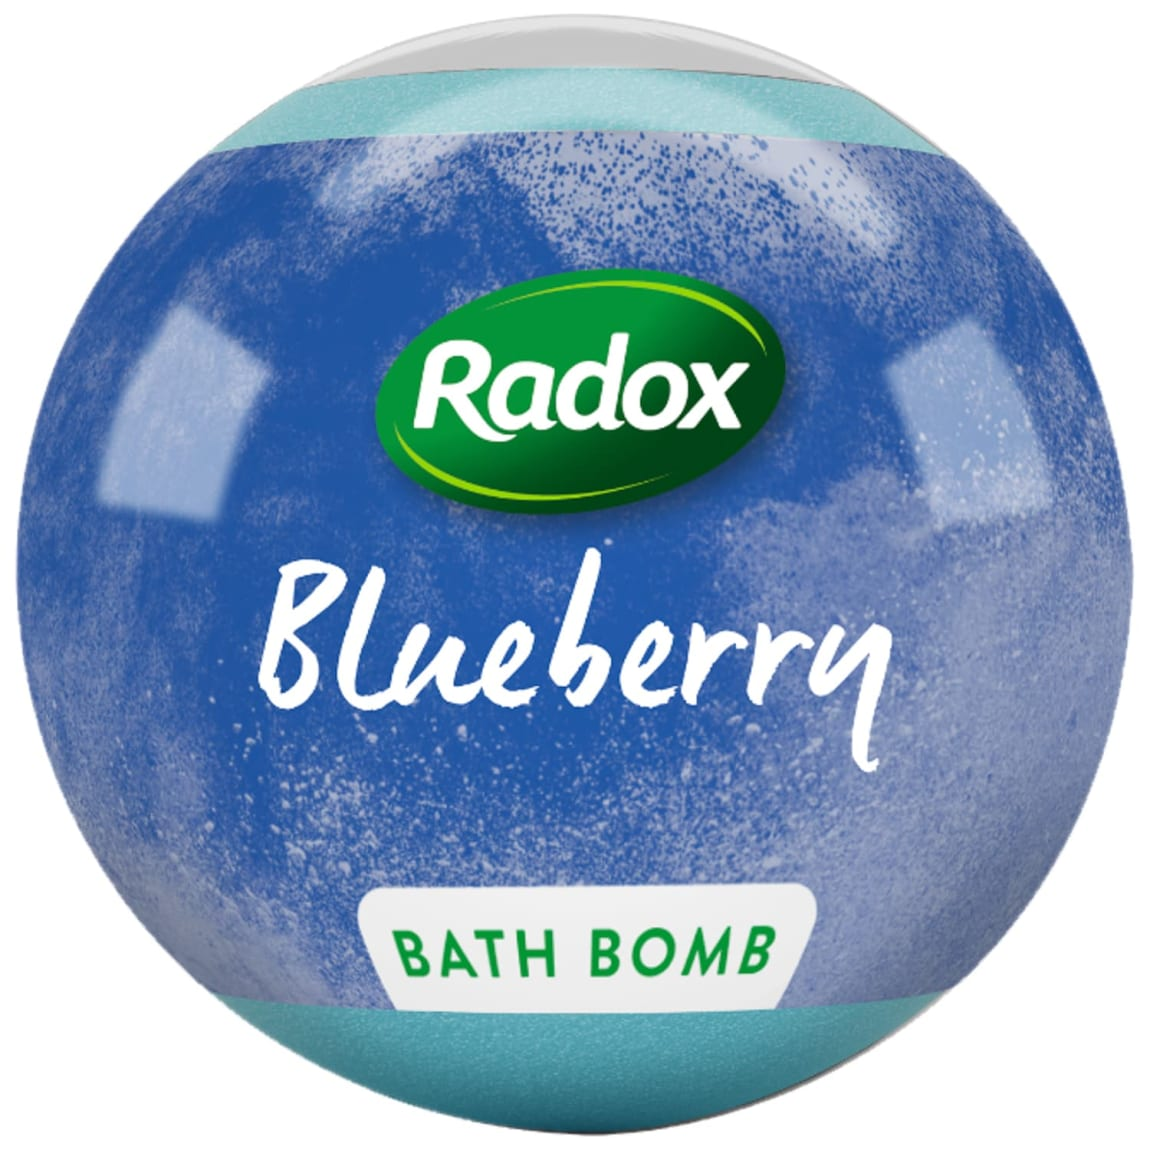 Radox Bath Bomb 100g - Blueberry